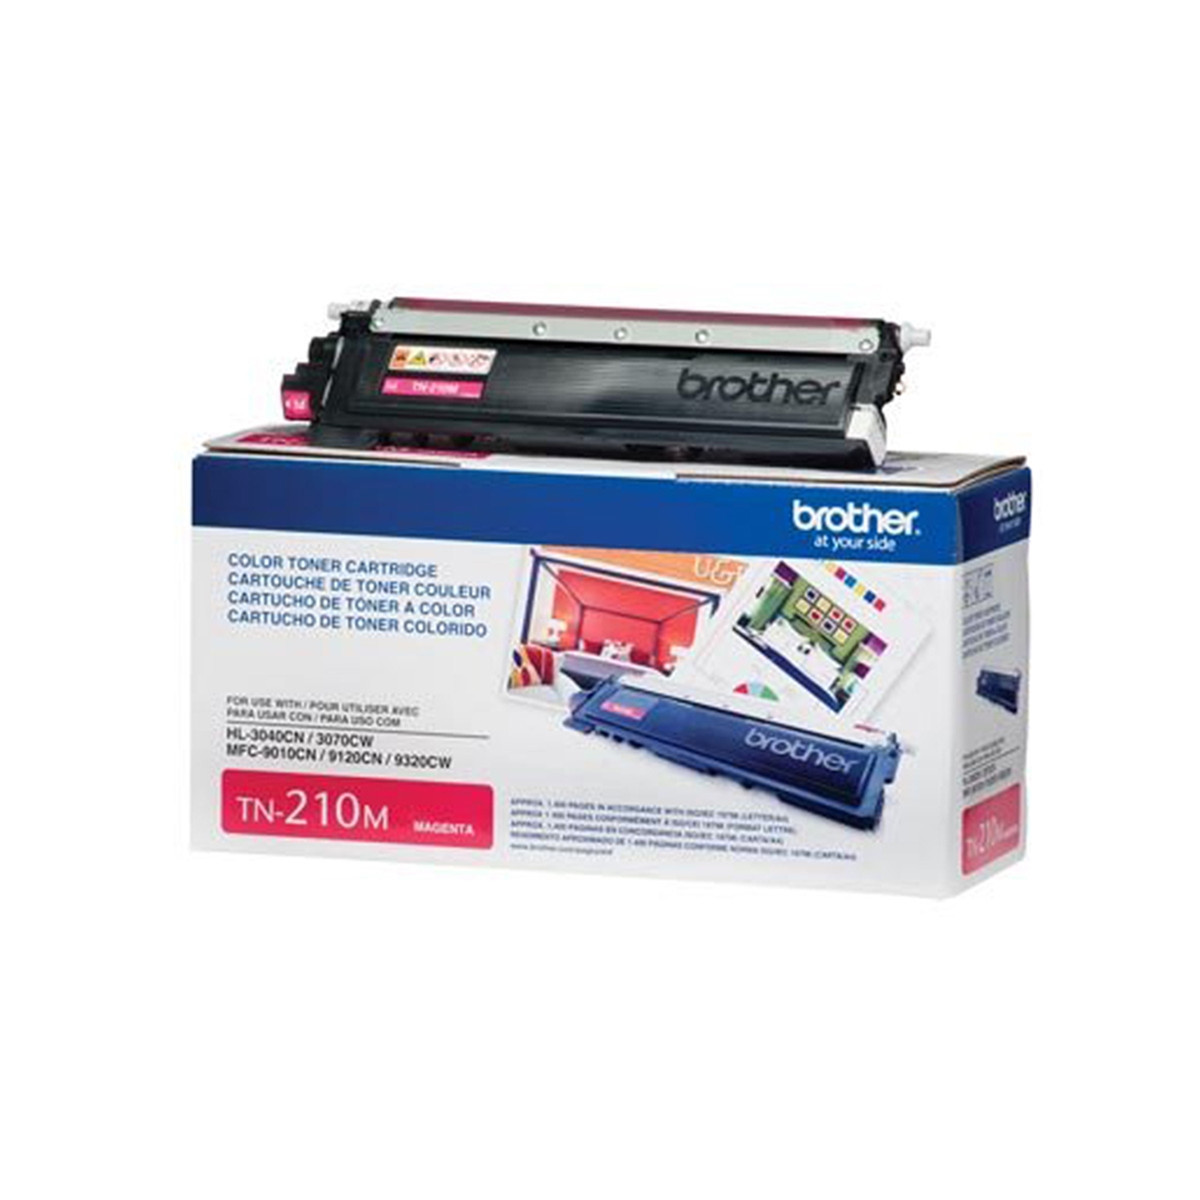 Toner Brother TN-210M TN210 Magenta | HL3040 HL3070 MFC9010 MFC9120 MFC9320 | Original 1.4k